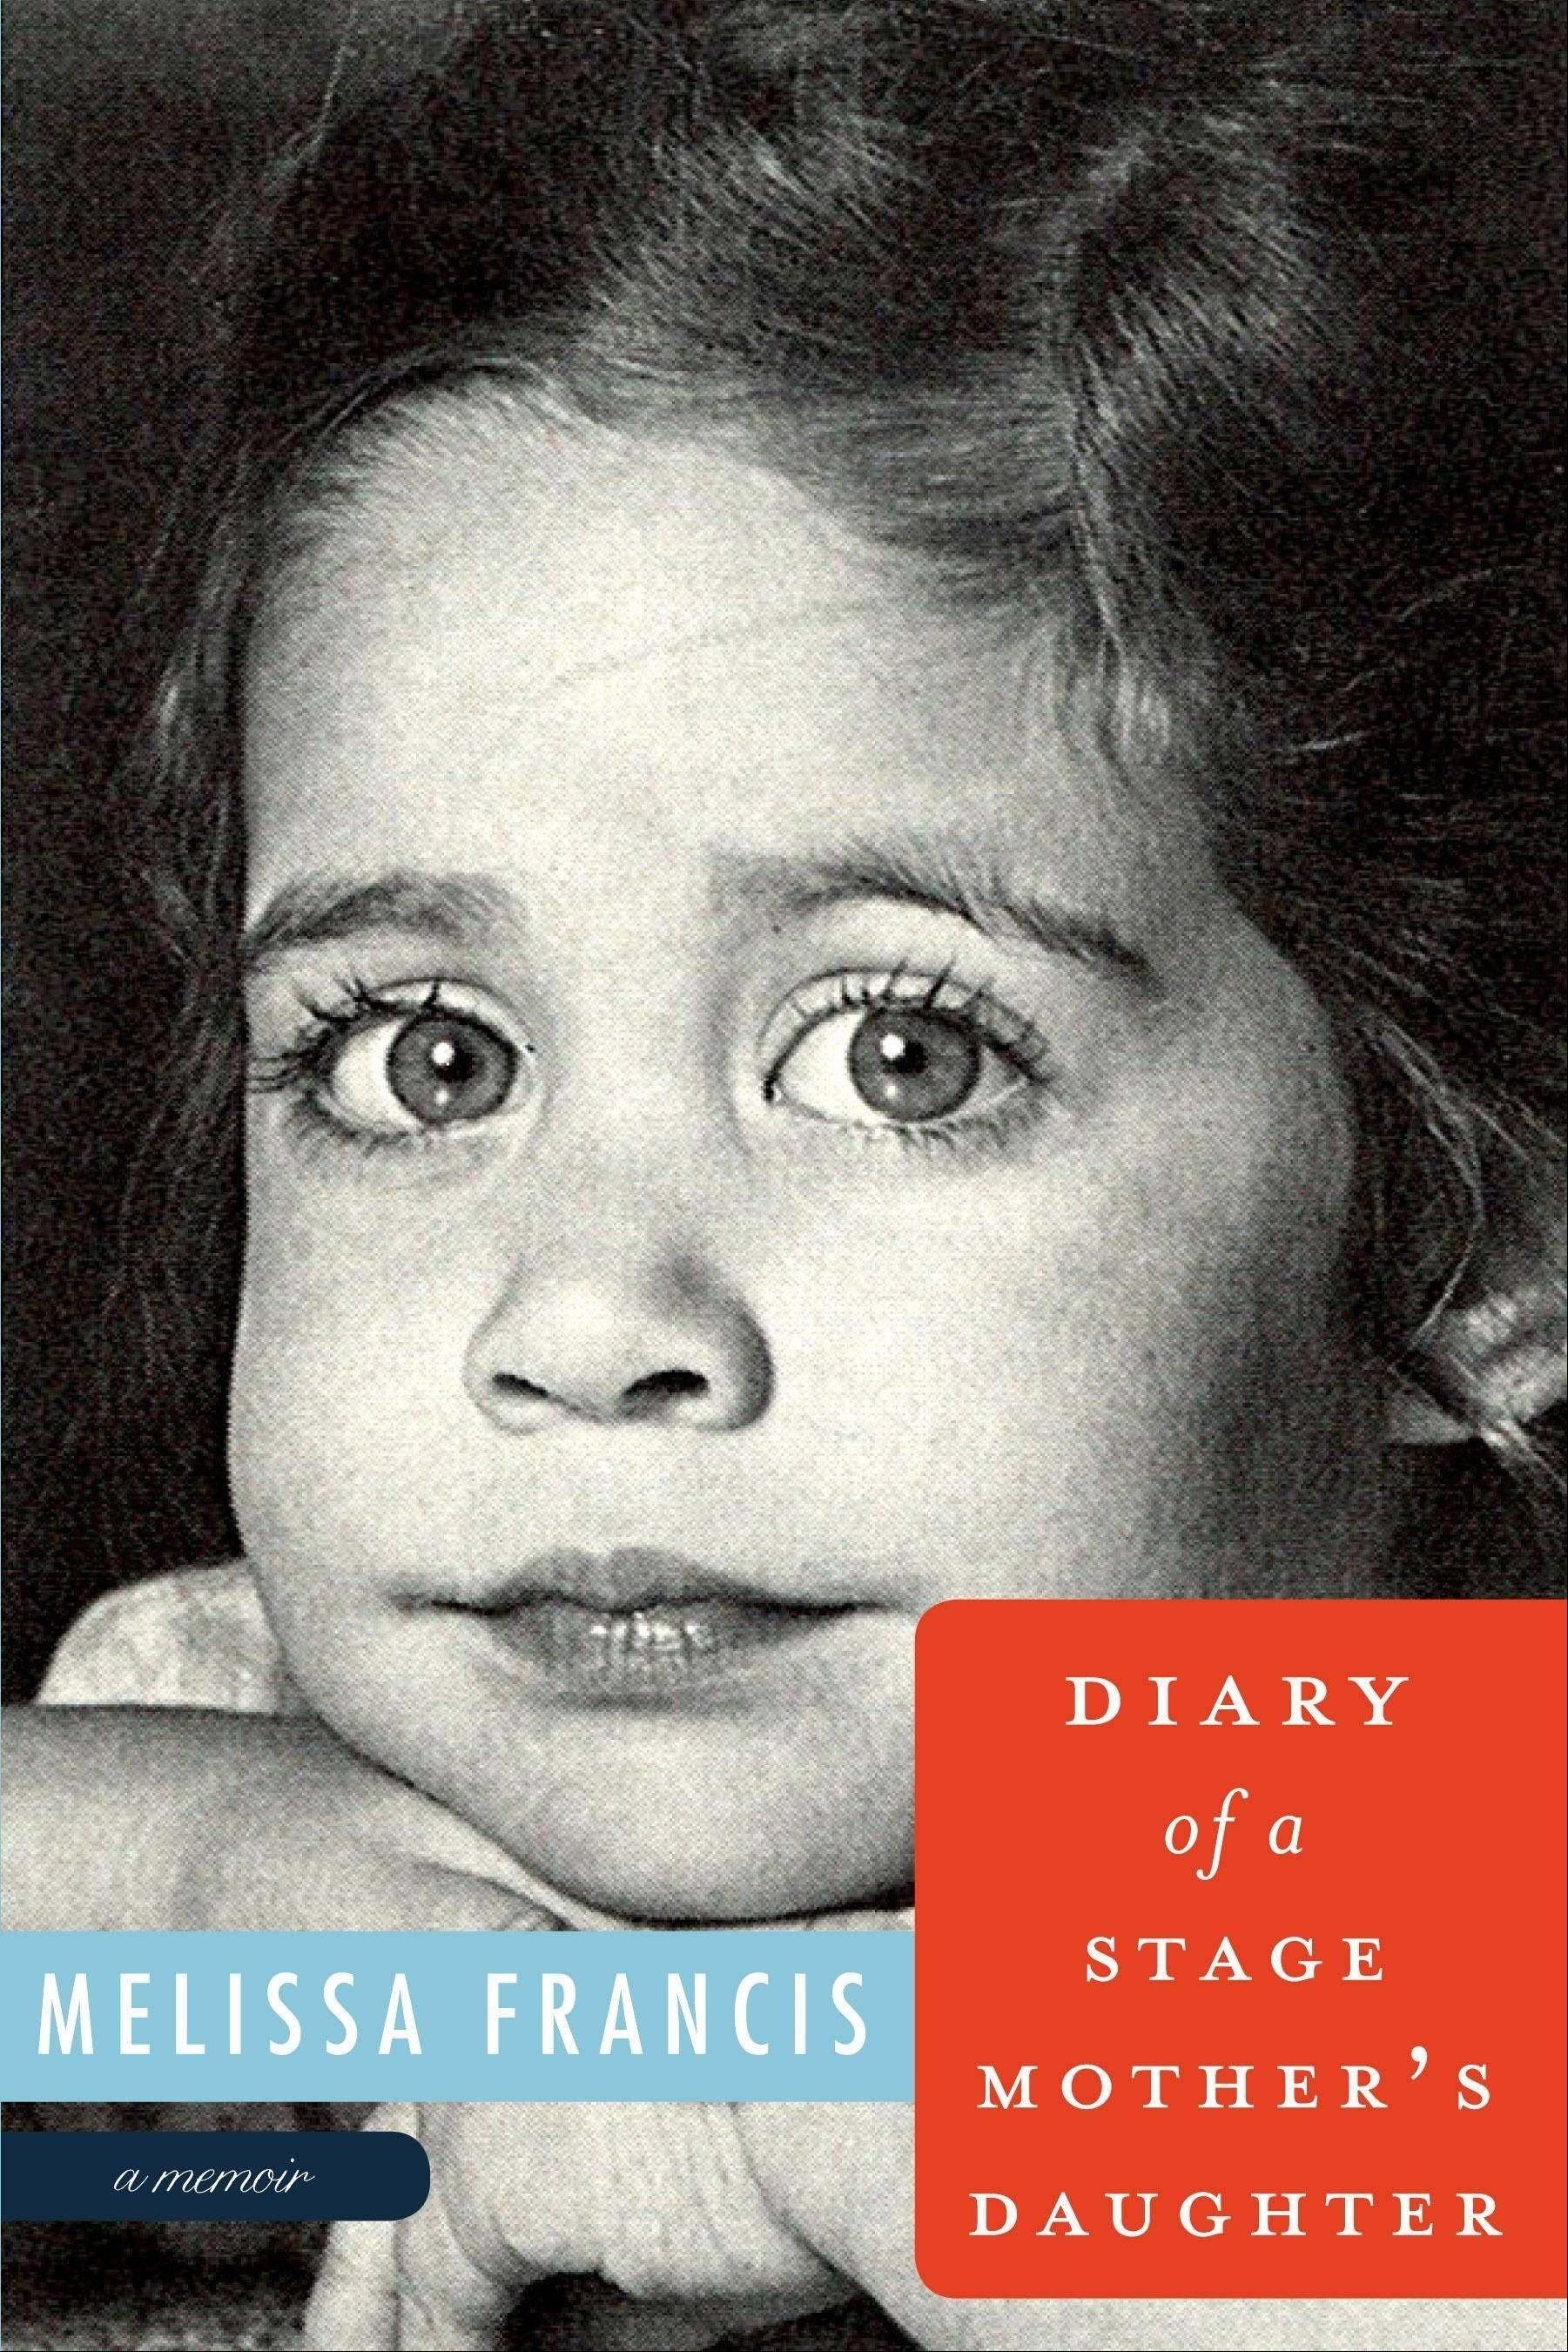 """Diary of a Stage Mother's Daughter"" by Melissa Francis"